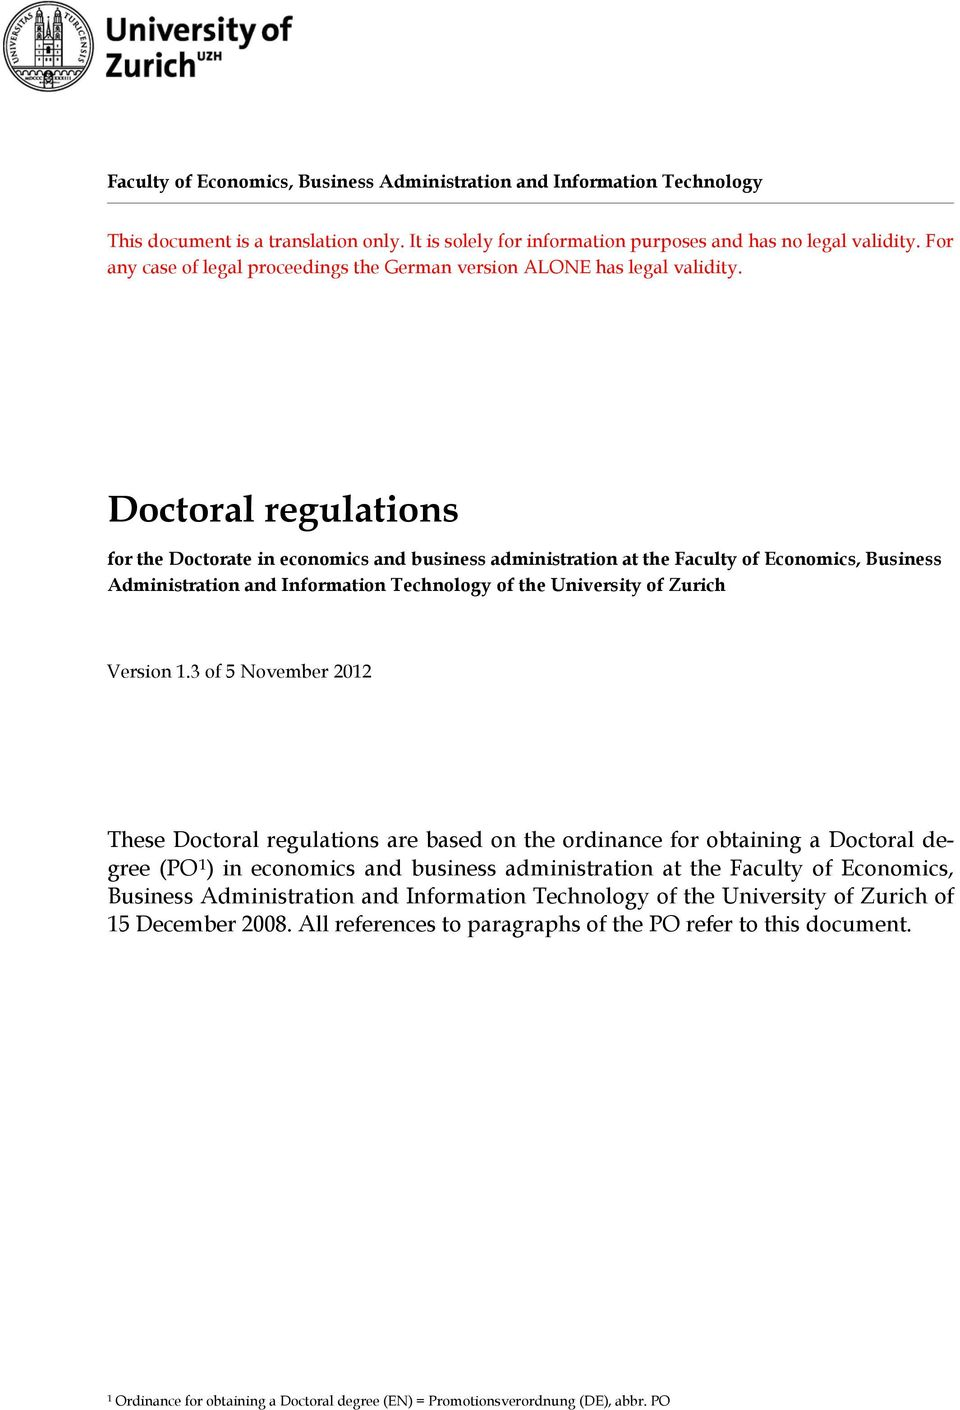 Doctoral regulations for the Doctorate in economics and business administration at the Faculty of Economics, Business Administration and Information Technology of the University of Zurich Version 1.